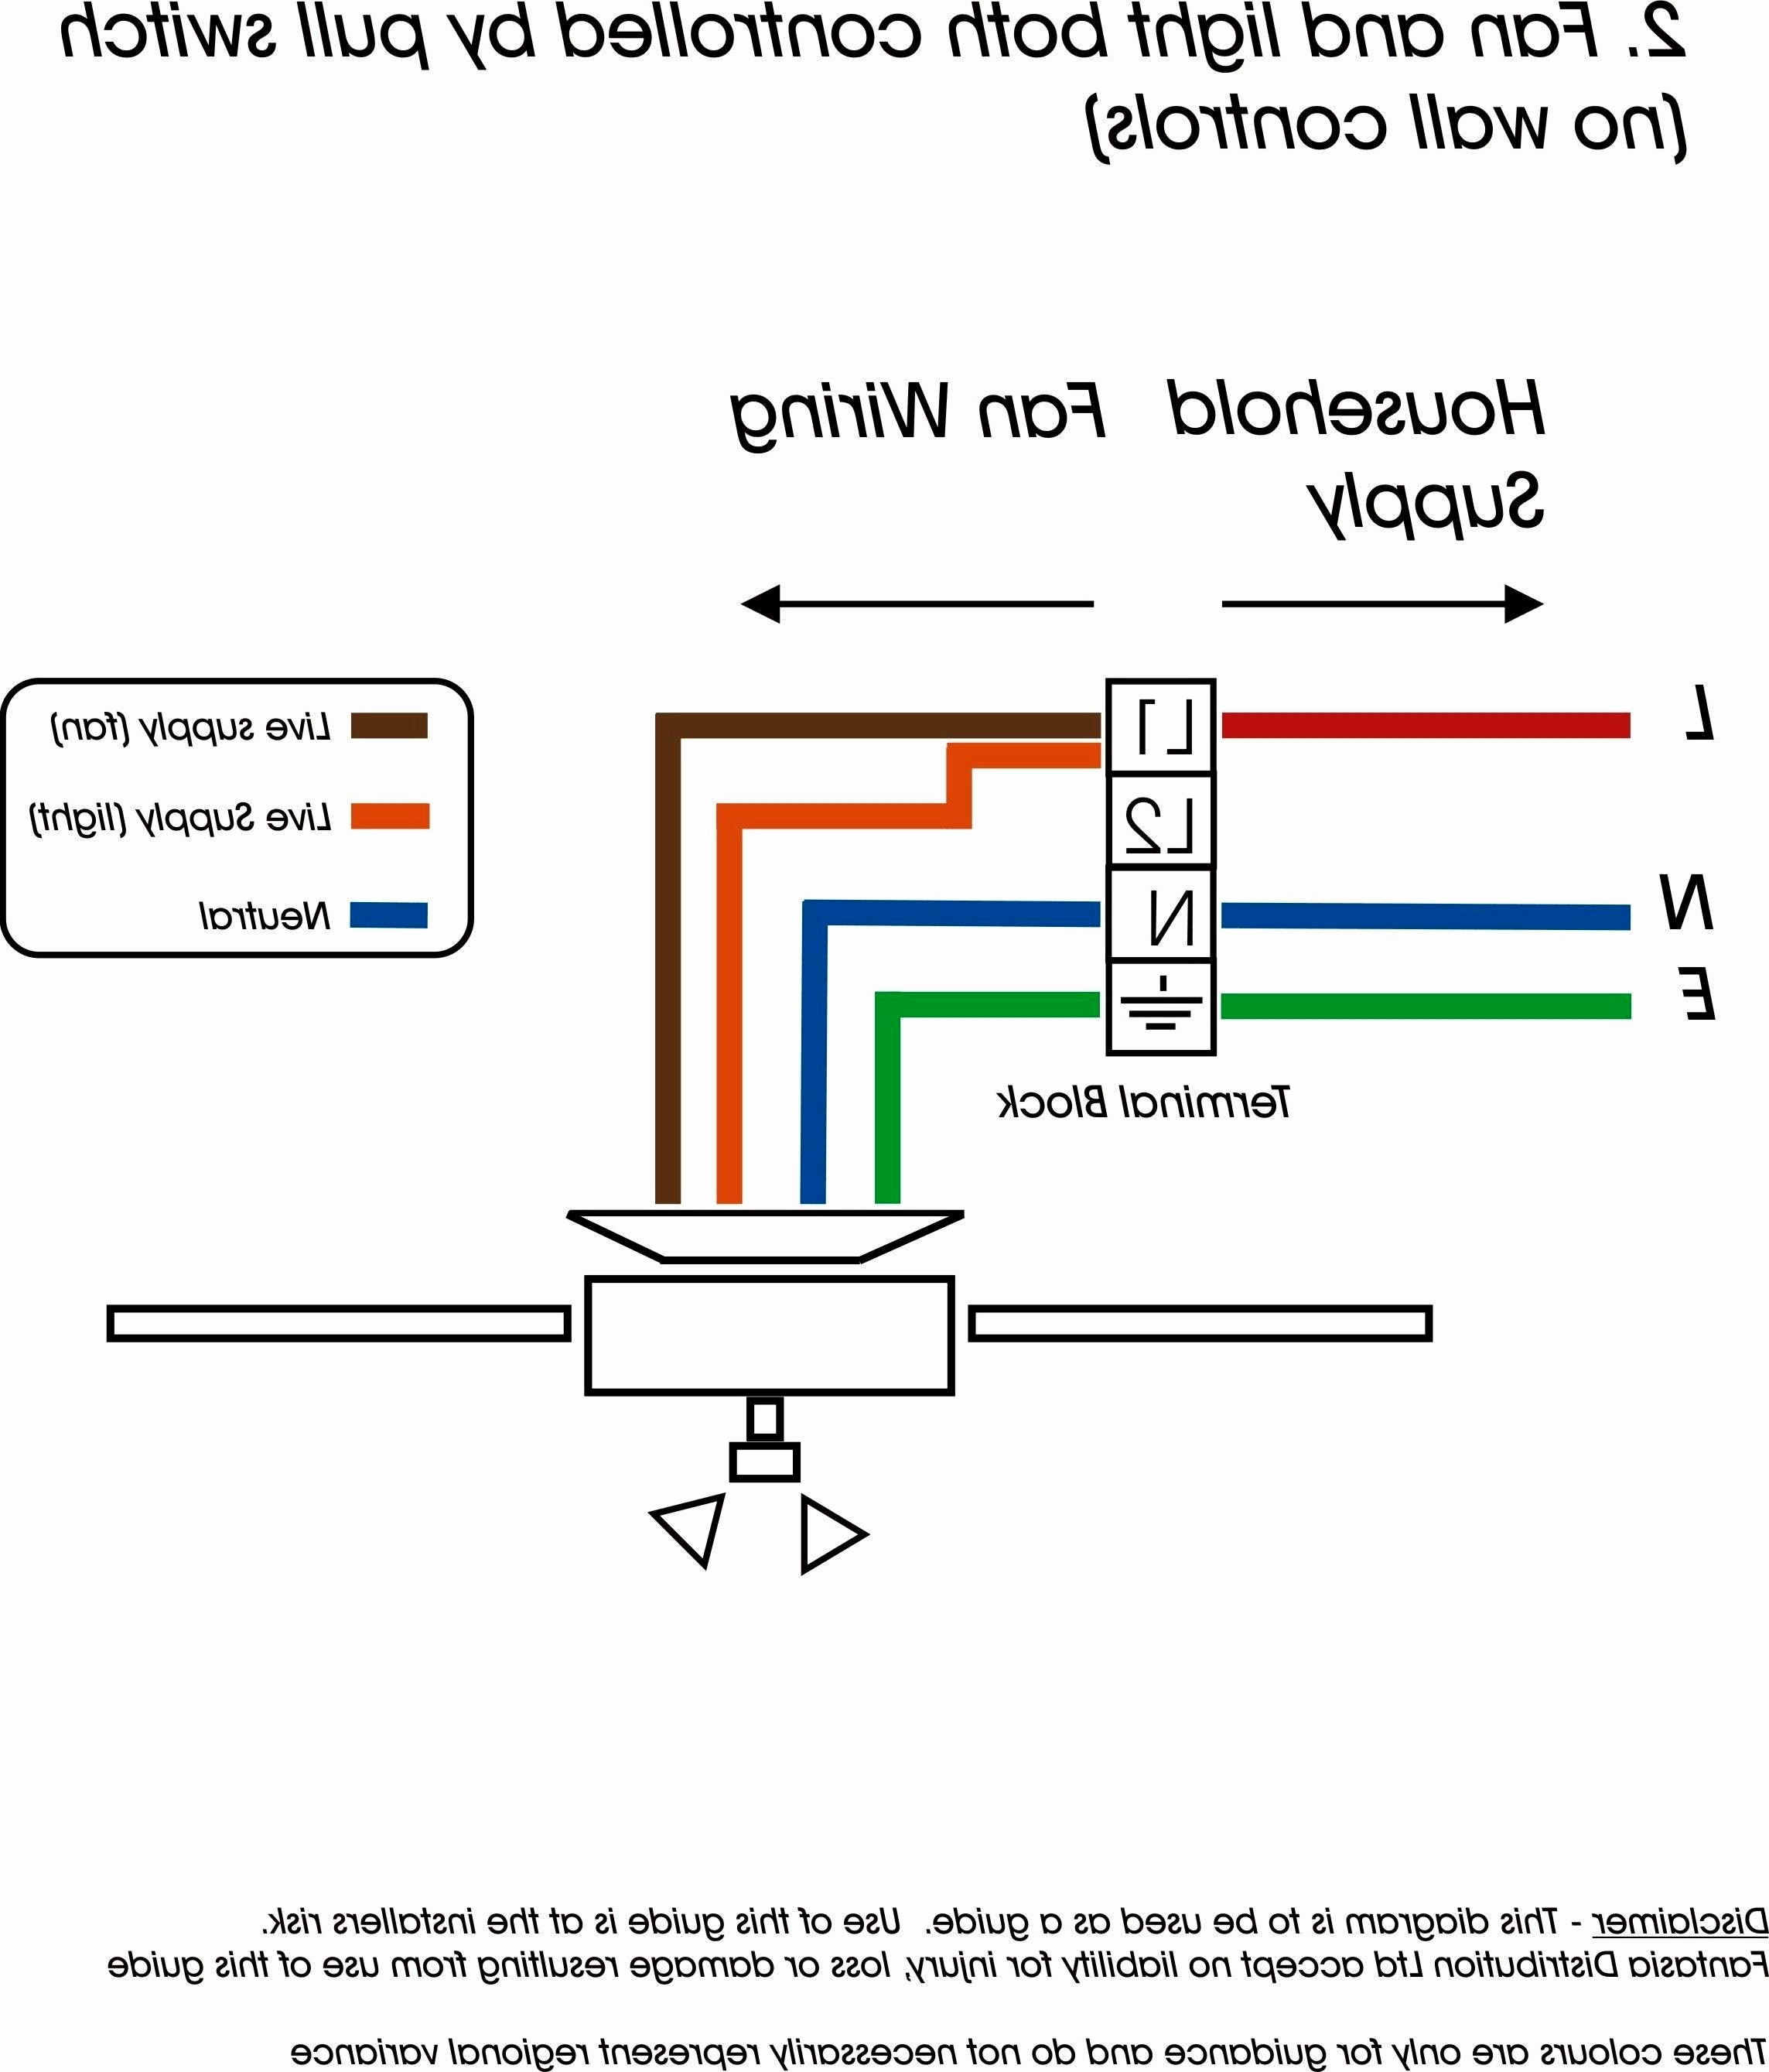 hunter ceiling fan wiring diagram red wire Download-Hunter Ceiling Fan Switch Inspirational Ceiling Fan Installation Red Wire New Wiring Diagram Ceiling Light 15-e